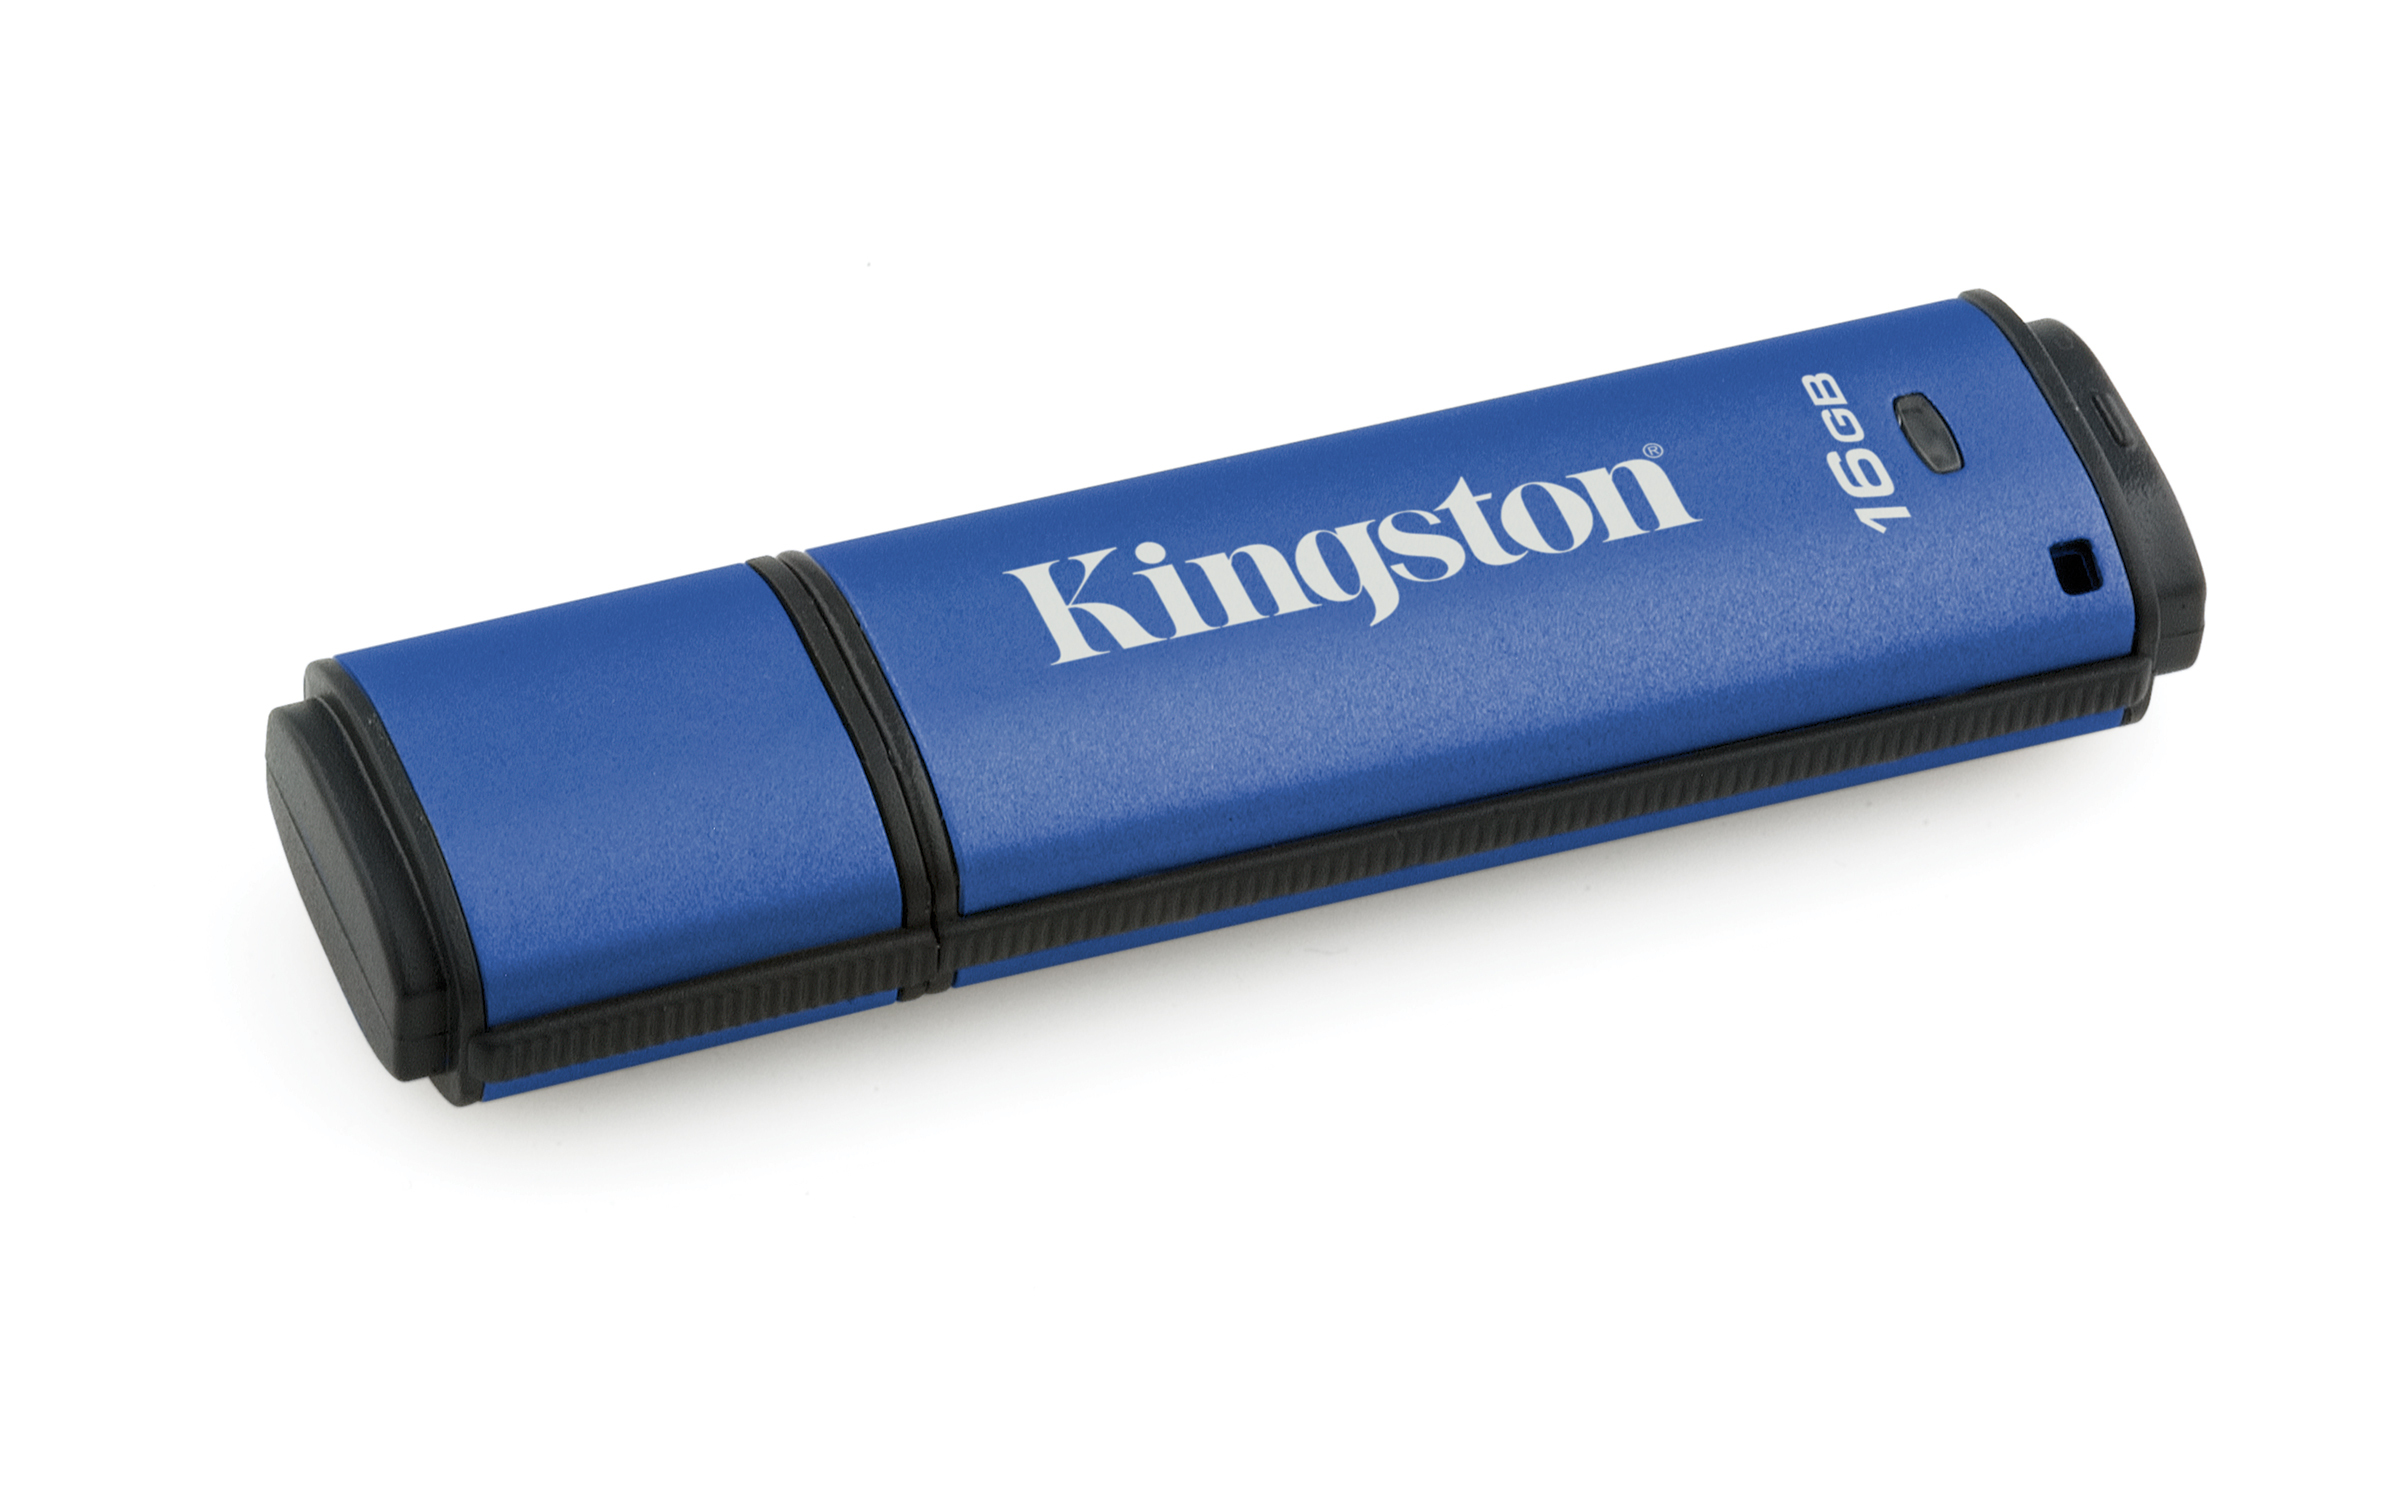 Kingston Technology DataTraveler Vault Privacy 3.0 16GB 16GB USB 3.0 Blue USB flash drive DTVP30/16G